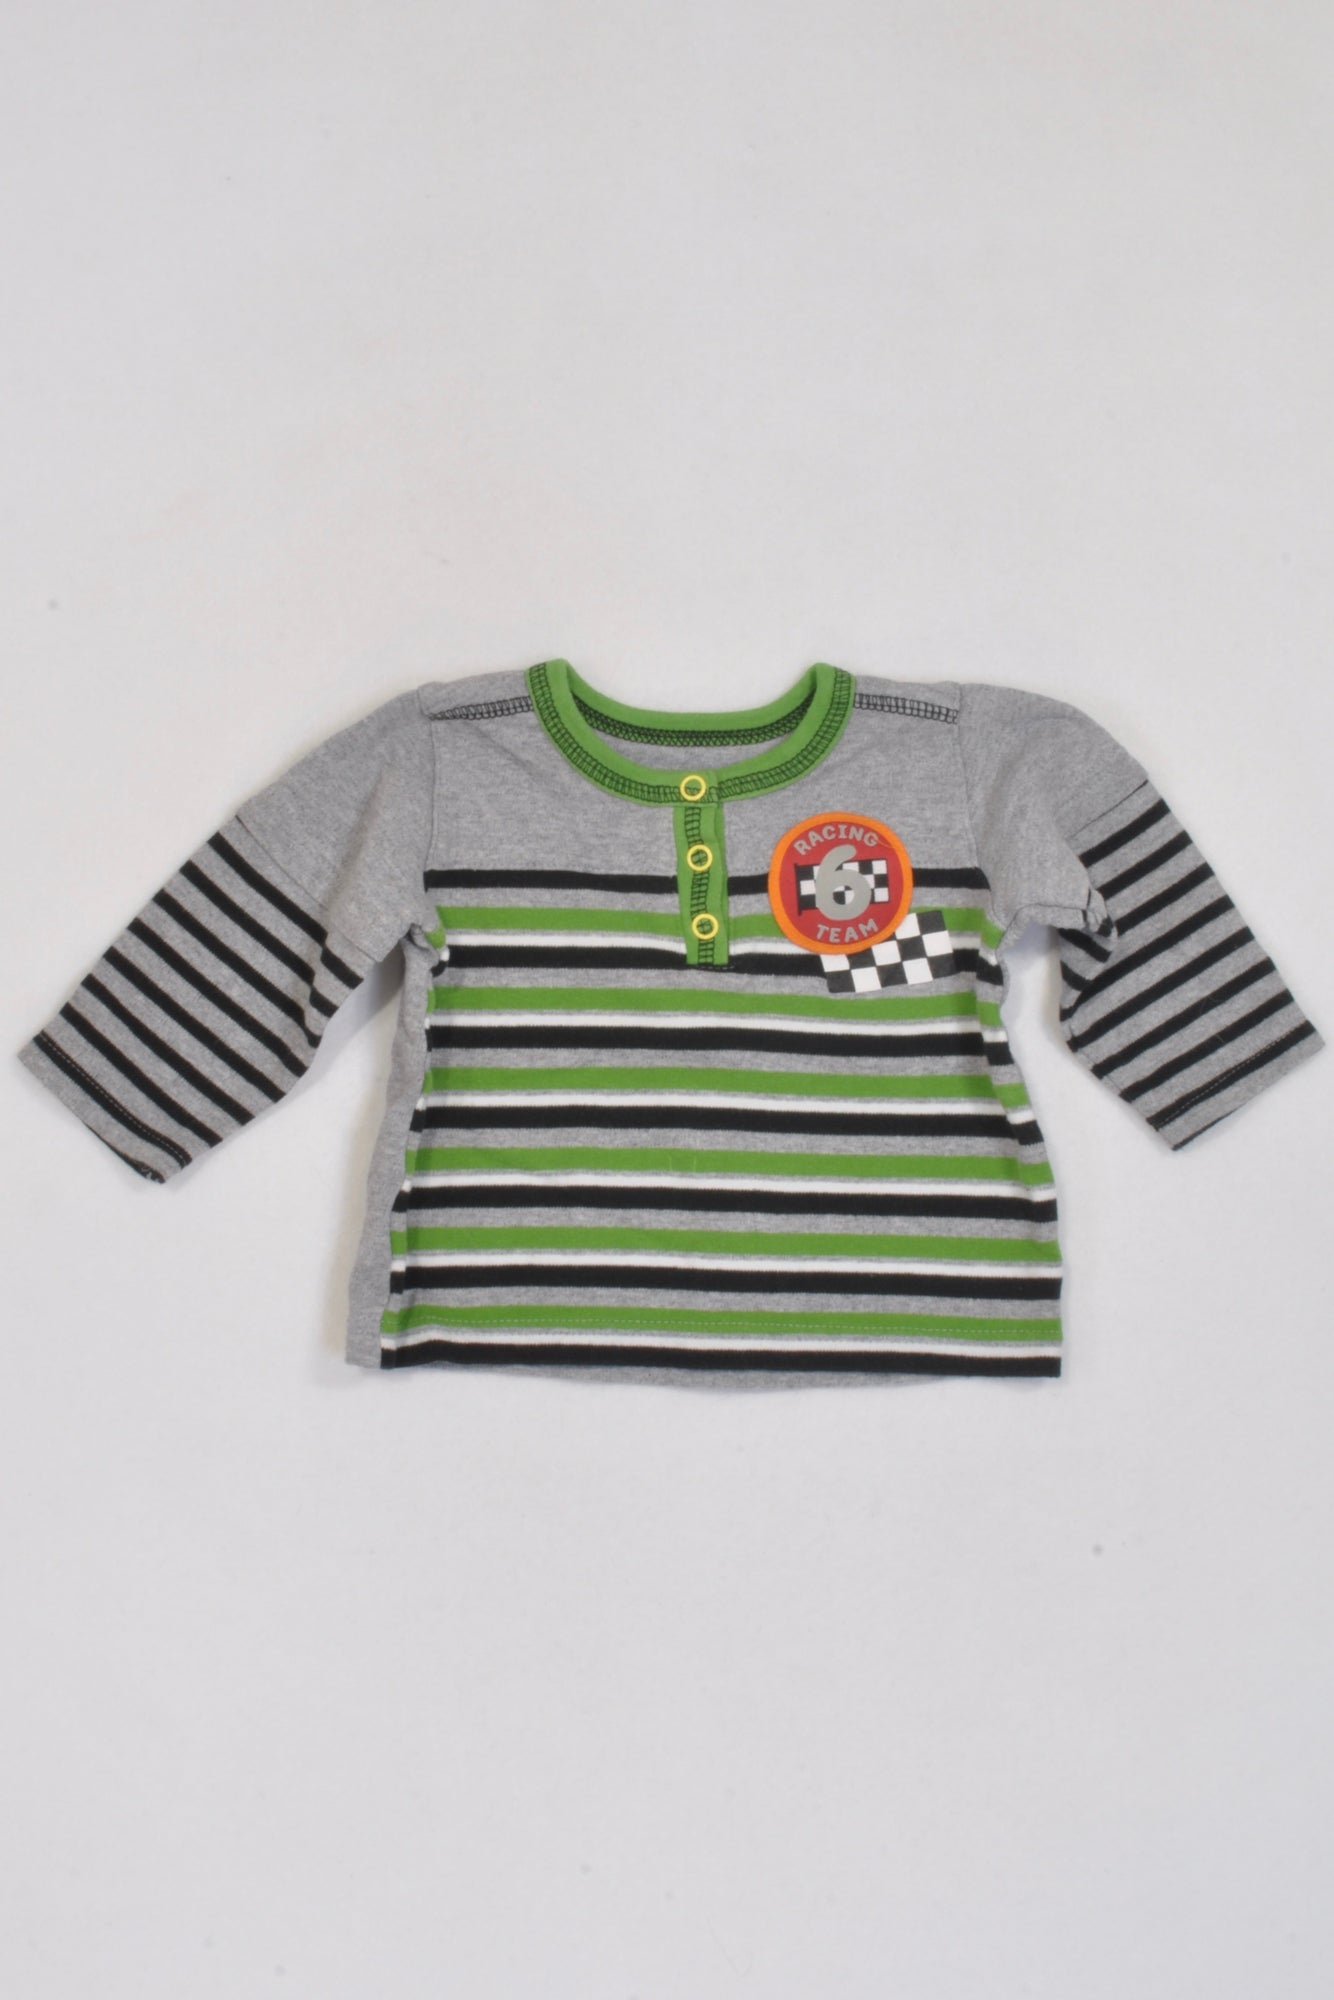 Woolworths Green Stripe Racing Team T-shirt Boys 3-6 months